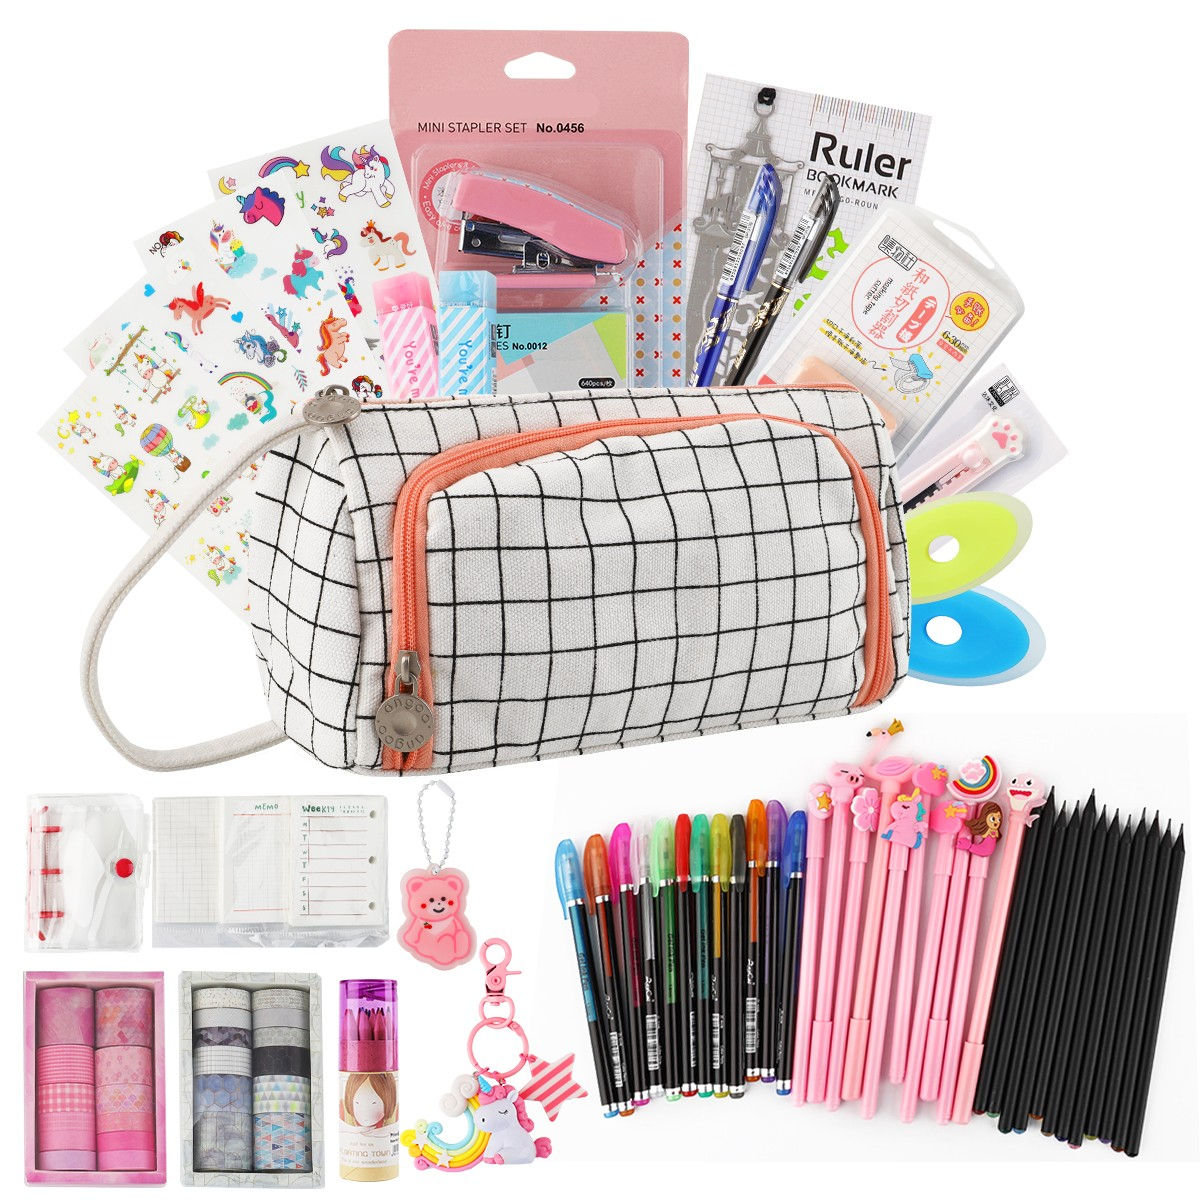 180pcs In 1 Stationery Gift Set With Erasable Gel Pen And School Tools Back To School Shopping List Set By Kevin&sasa Crafts